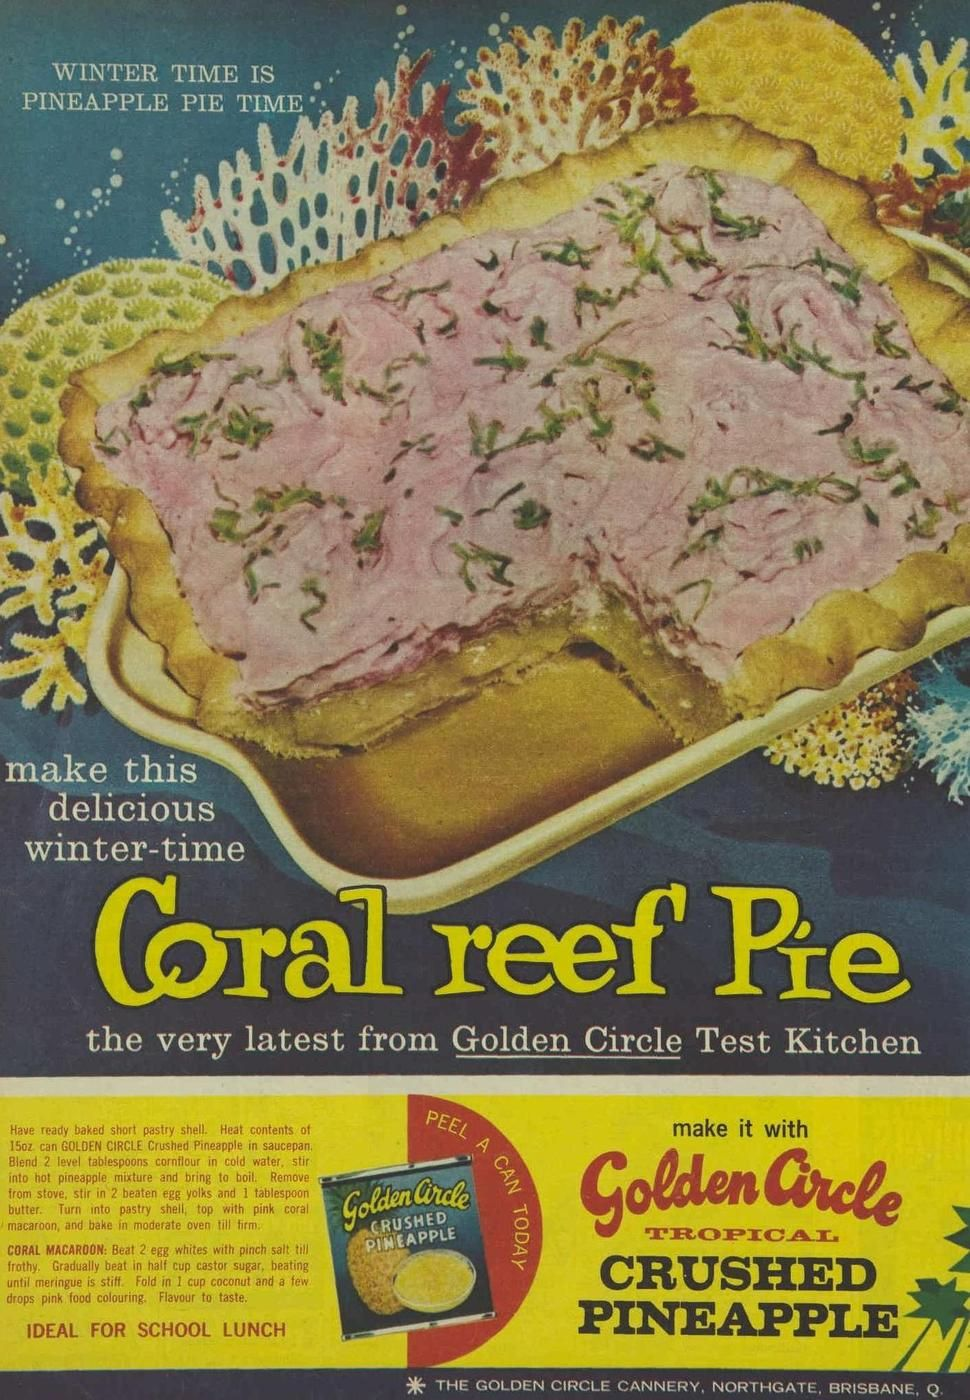 Coral reef Pie--the very latest from the Golden Circle Test Kitchen ...